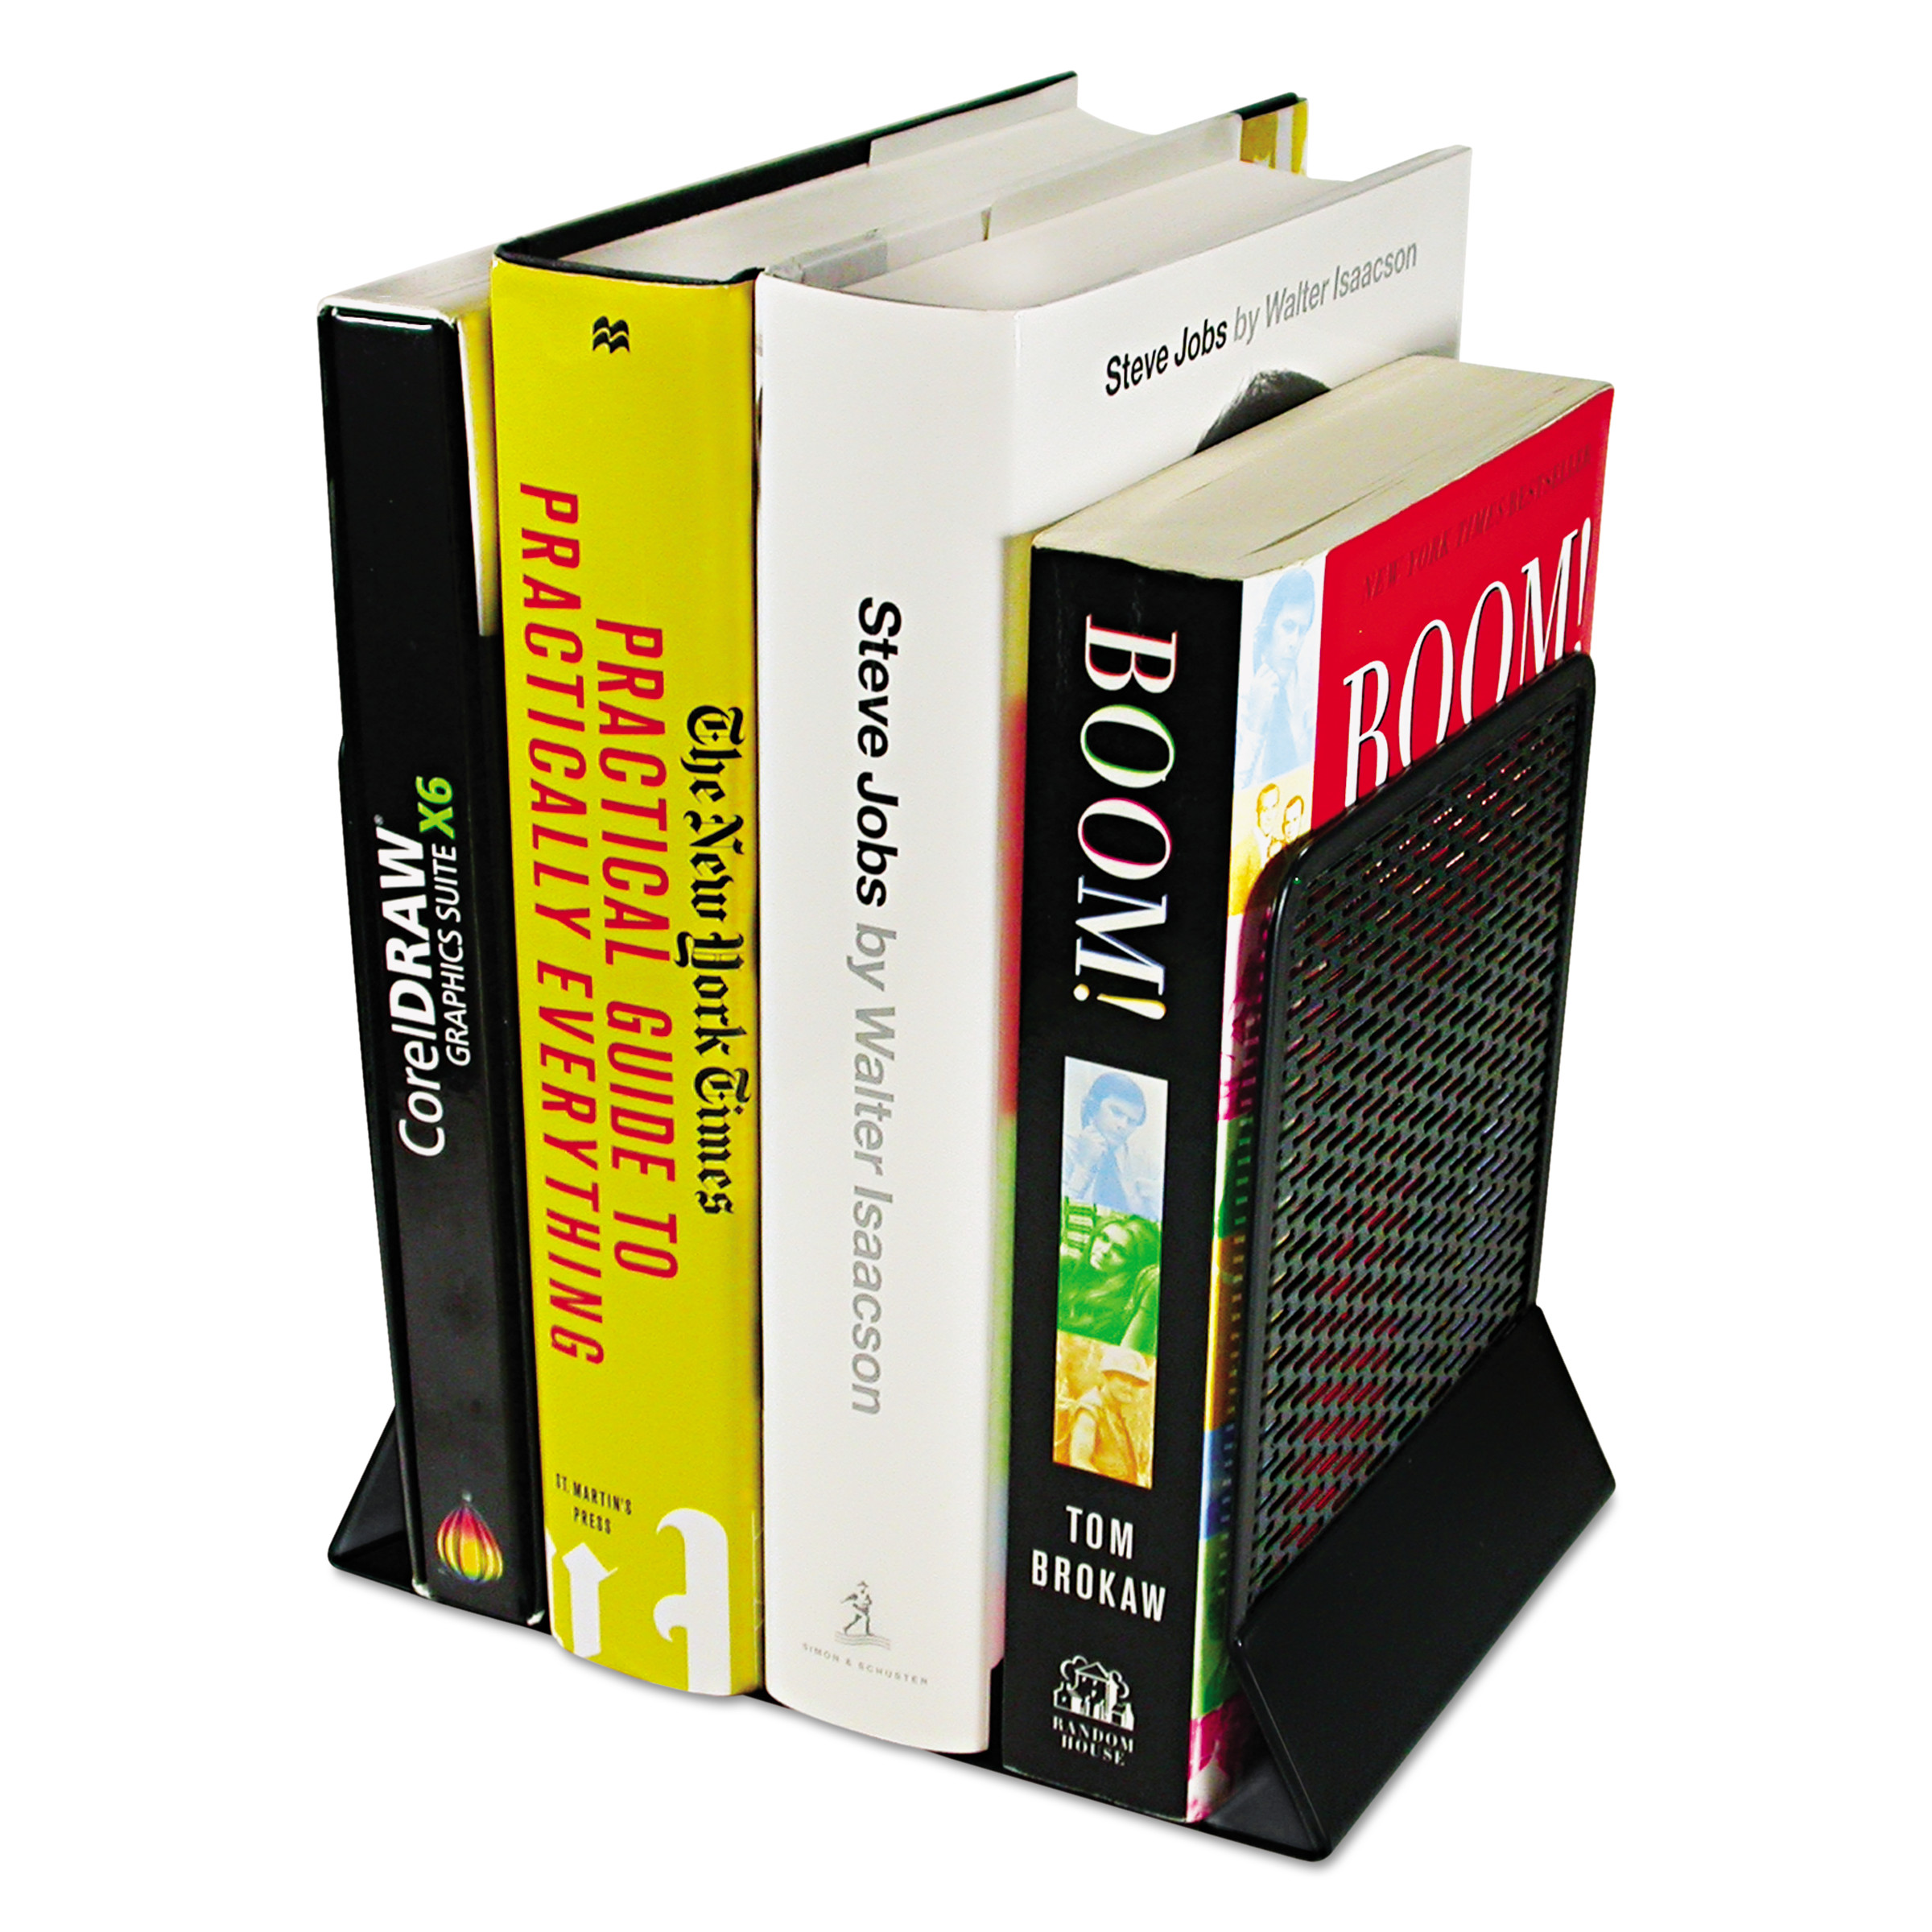 Artistic Urban Collection Punched Metal Bookends, 6 1 2 x 6 1 2 x 5 1 2, Black -AOPART20008 by ARTISTIC LLC